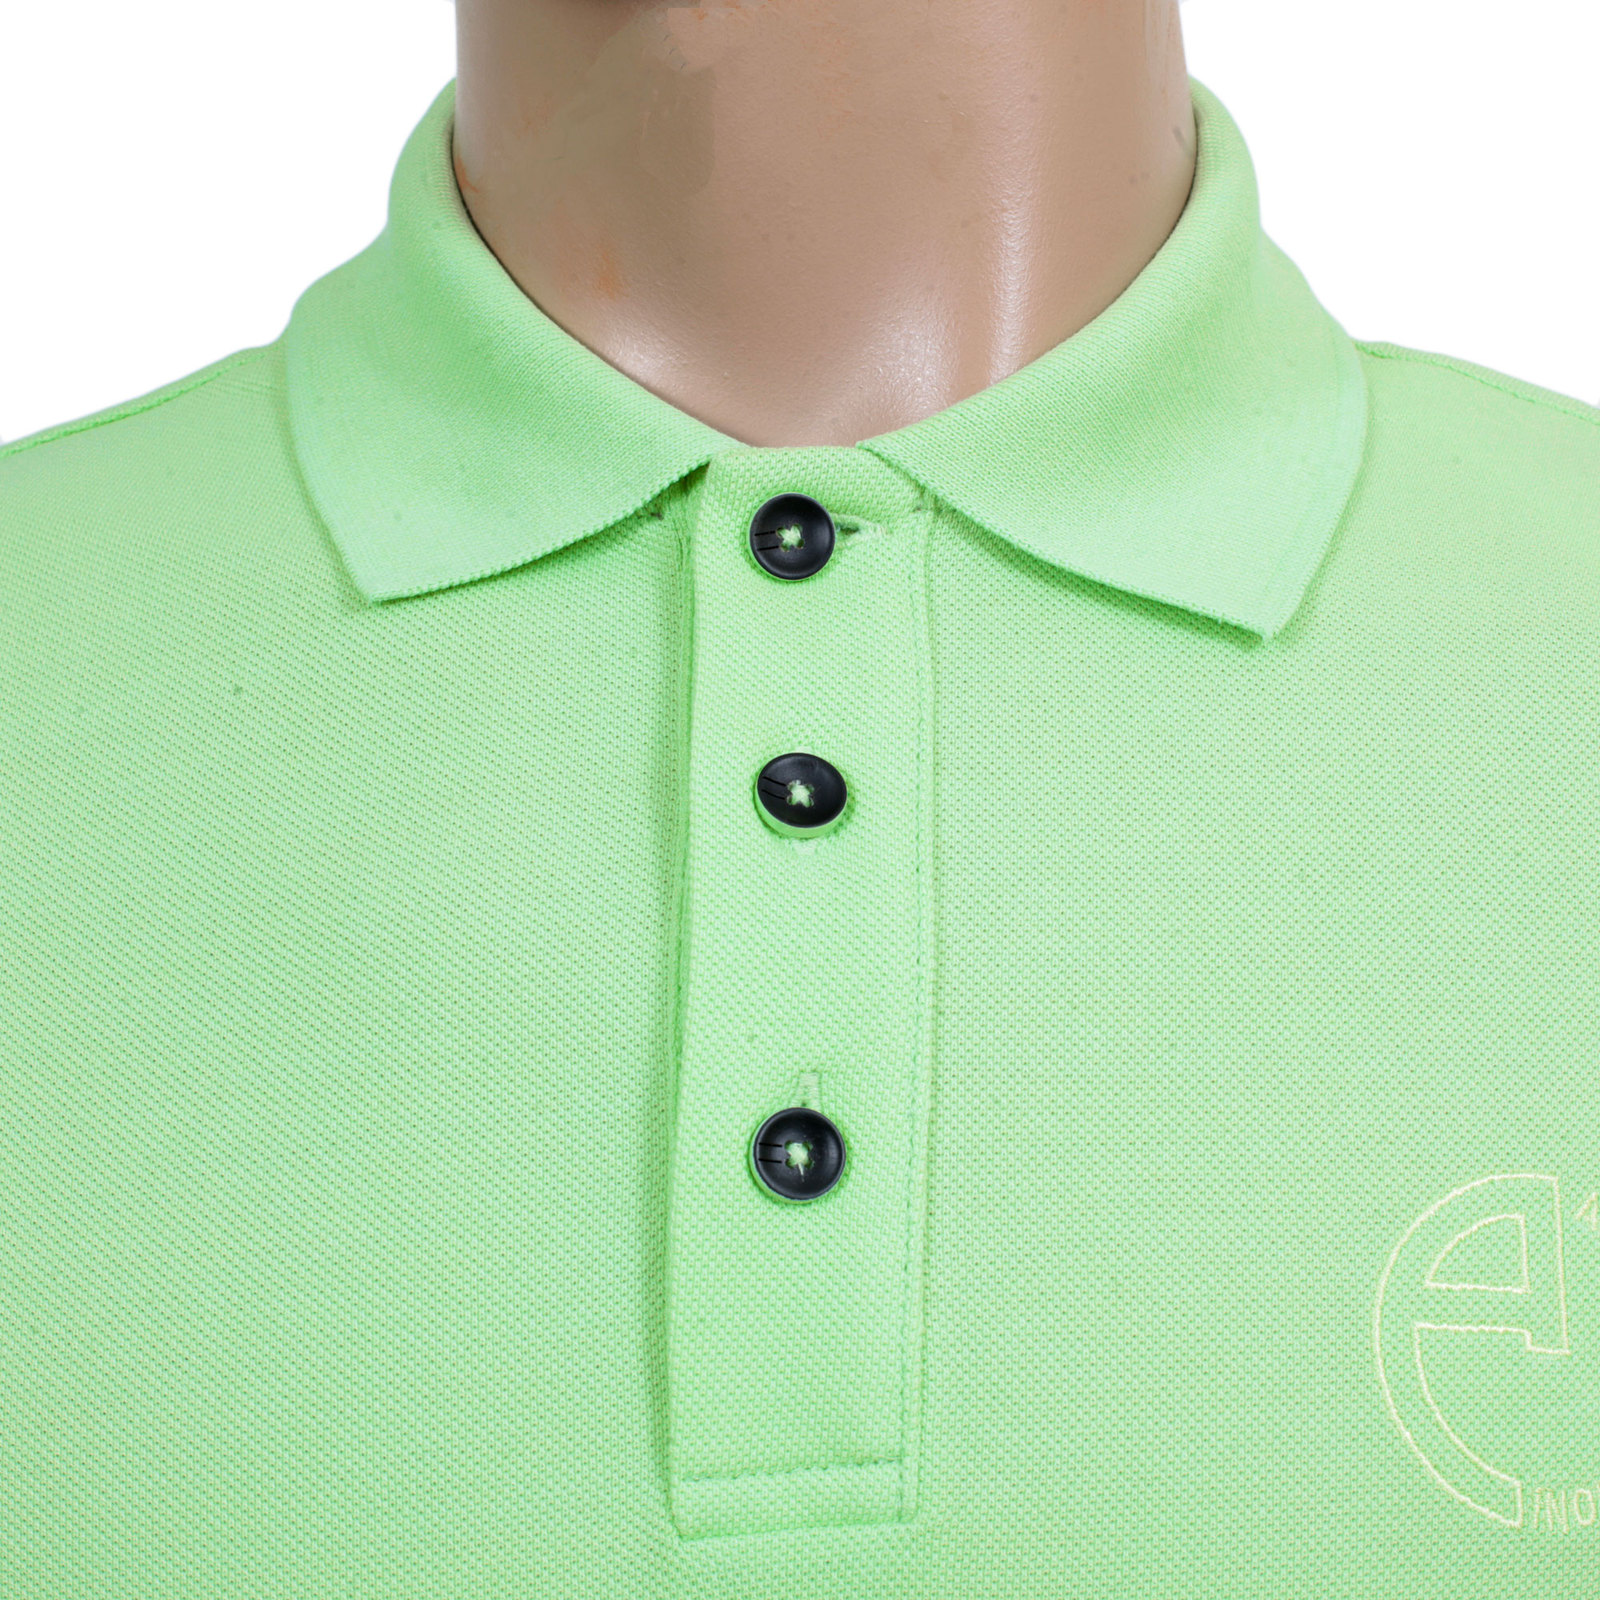 9afc8a1c Lacoste Polo Shirt Original Vs Fake - DREAMWORKS